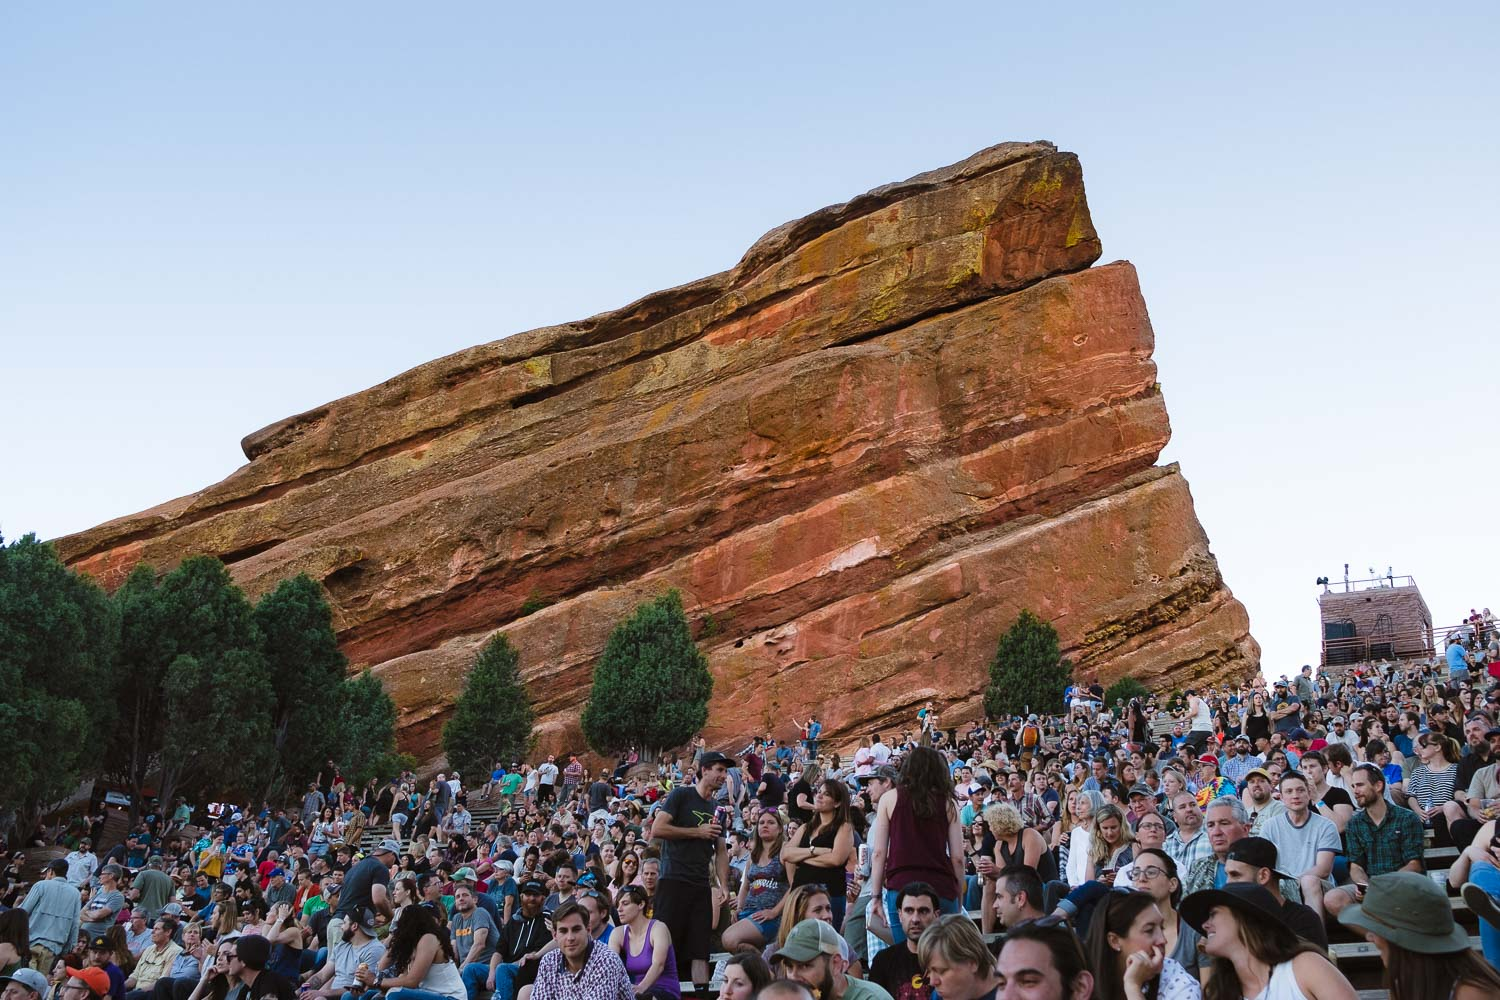 """Thousands of people wait for the concert to start at the Red Rocks Amphitheatre, Denver. Travel photography and guide by © Natasha Lequepeys for """"And Then I Met Yoko"""". #colorado #usa #denver #rockymountainnationalpark #rmnp #coloradosprings #travelguide #photoblog #travelblog #travelphotography #landscapephotography #coloradoitinerary #fujifilm #hiking #nature #wildlifephotography #getoutdoors #deer #nationalpark #gardenofgods"""